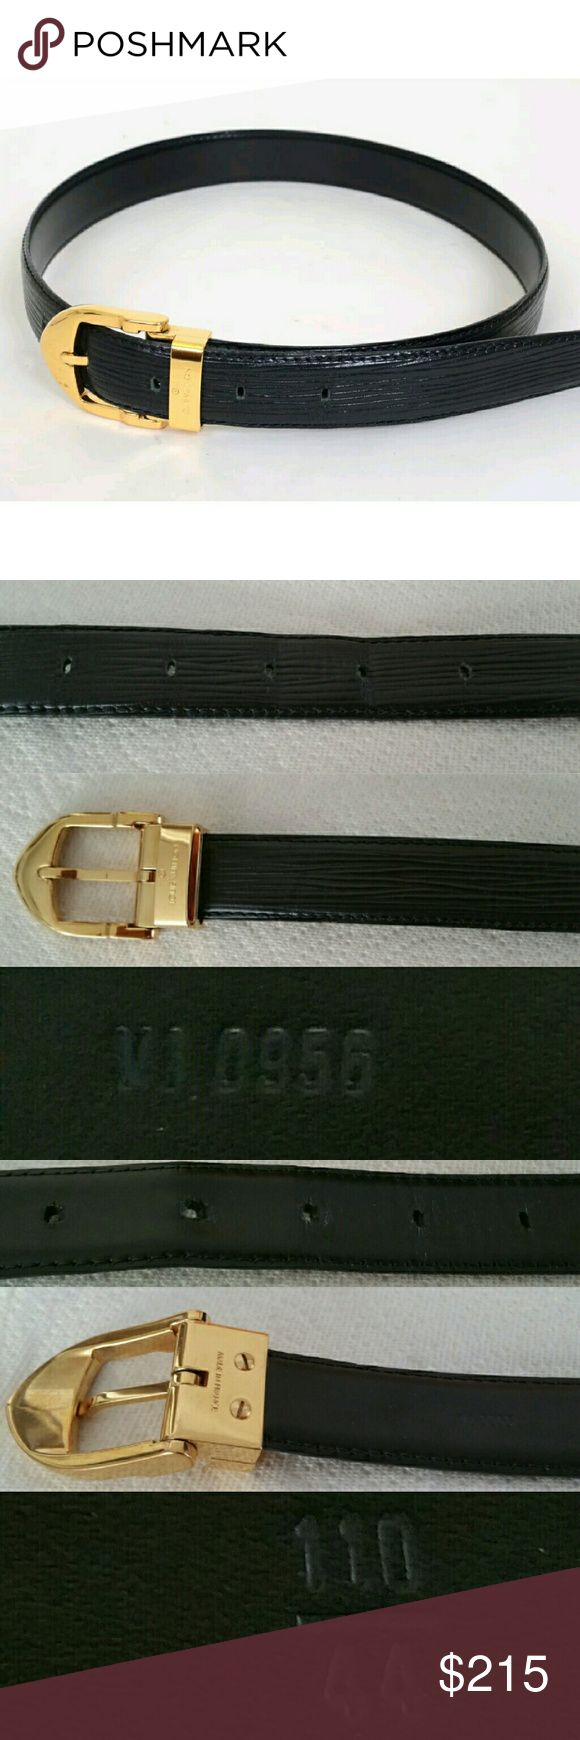 "💯Authentic Louis Vuitton Black Epi Leather Belt Authentic Louis Vuitton black and gold plated Epi leather belt. Date Code	VI0956. Hardware engraved with Louis Vuitton and made in France. Total Length 75cm / 29.5"", width 2.5cm. Waist size 110/44 EU, 22""- 26"" US (see pic), adjustable with 5 notches. Used a few times. Slightly lack of luster on hardware, some signs of wear on holes. Retail price $500 plus tax. NO TRADES! Lower $ thru 🅿🅿✔Ⓜercari✔ Louis Vuitton Accessories Belts"